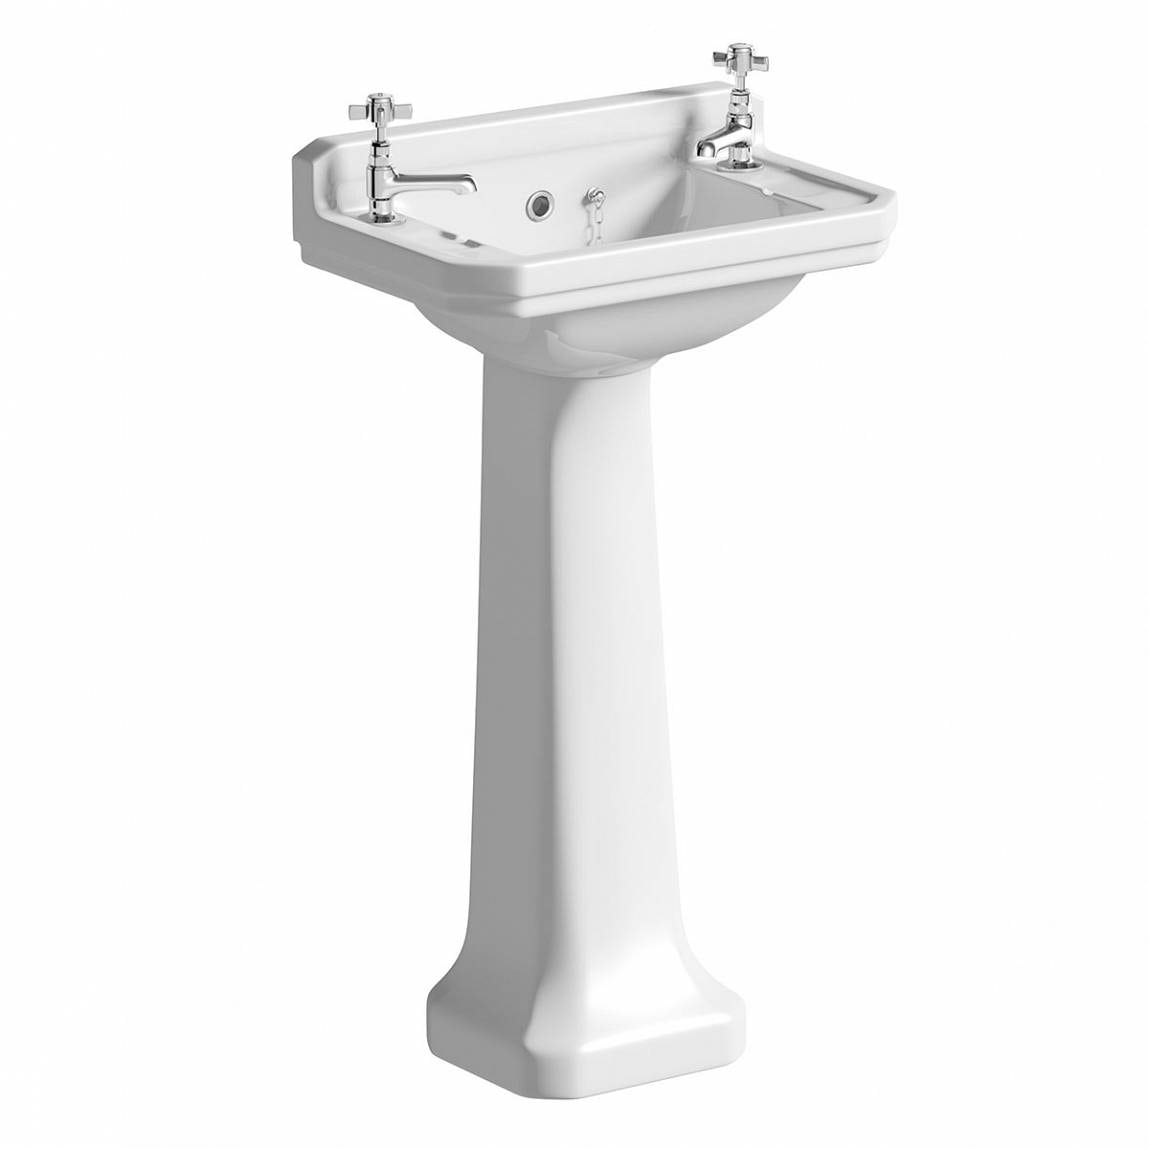 The Bath Co. Camberley 2 tap hole full pedestal basin 500mm